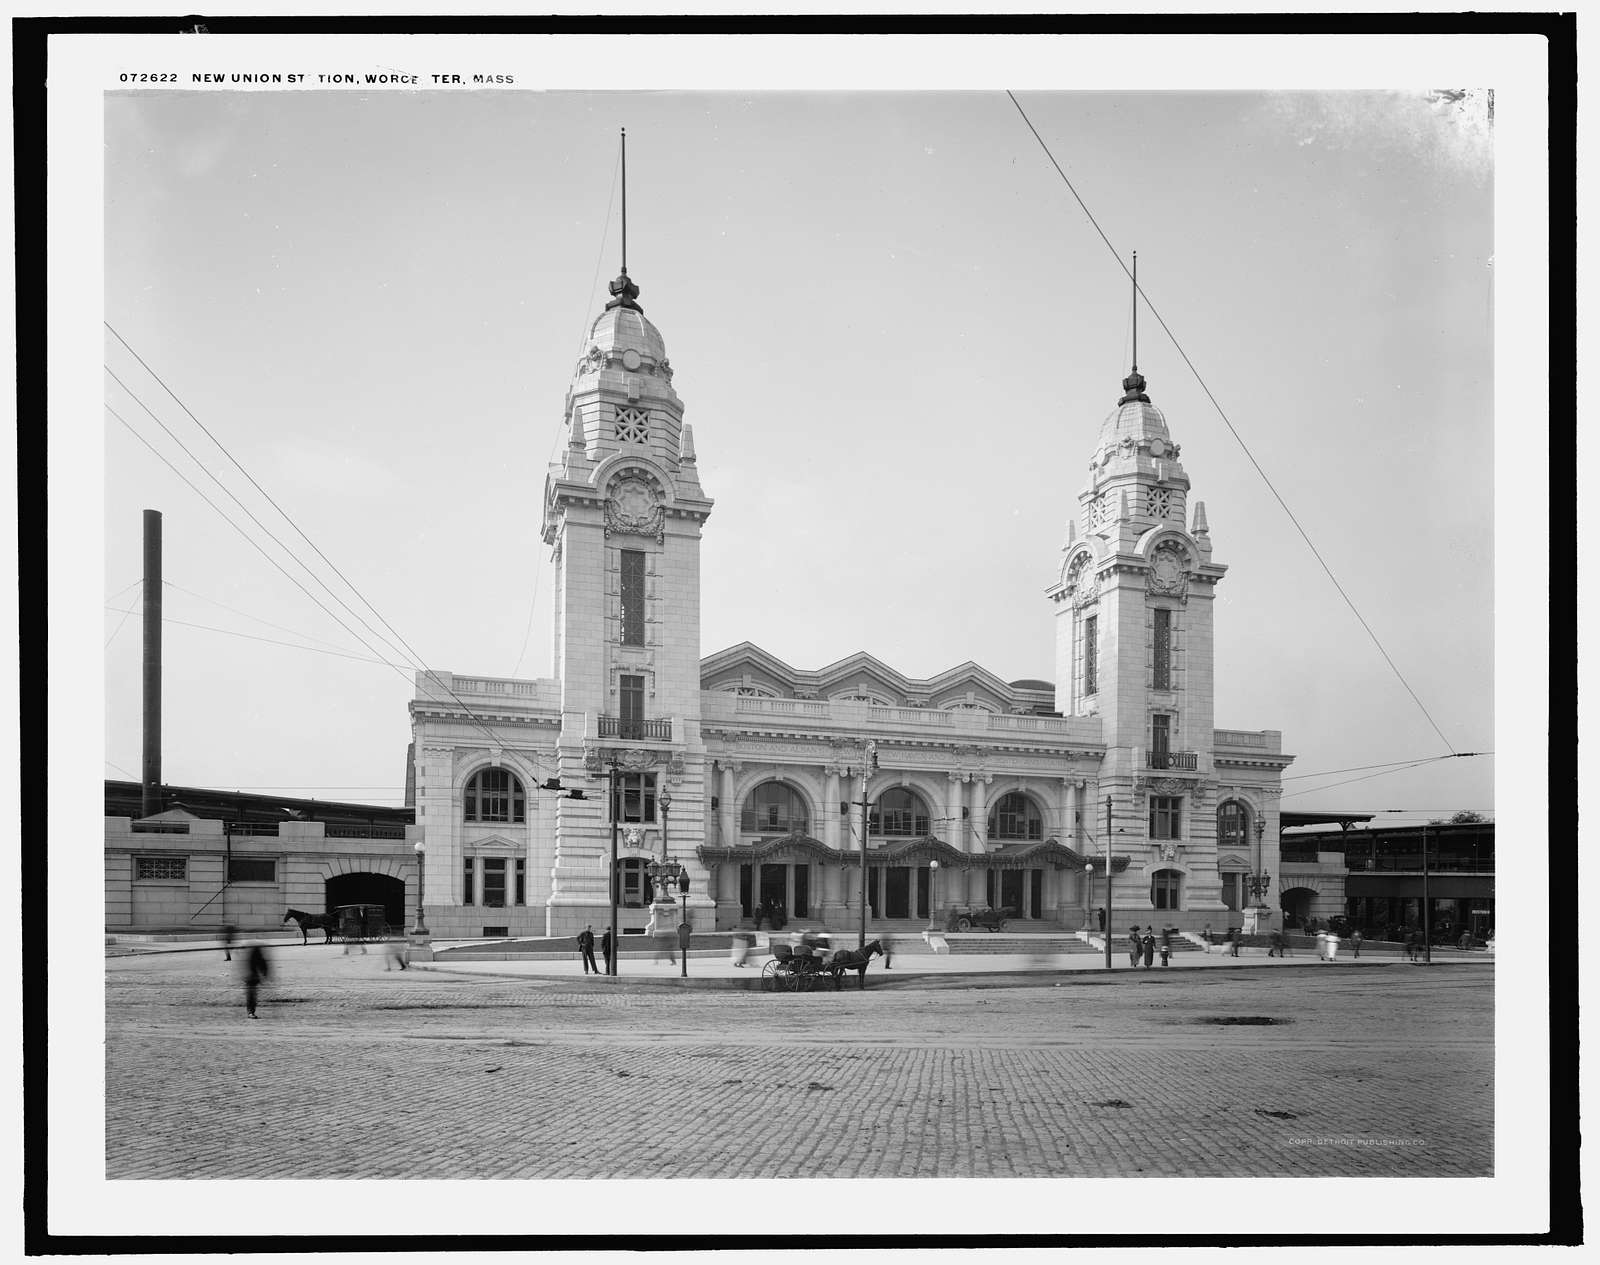 New Union Station, Worcester, Mass